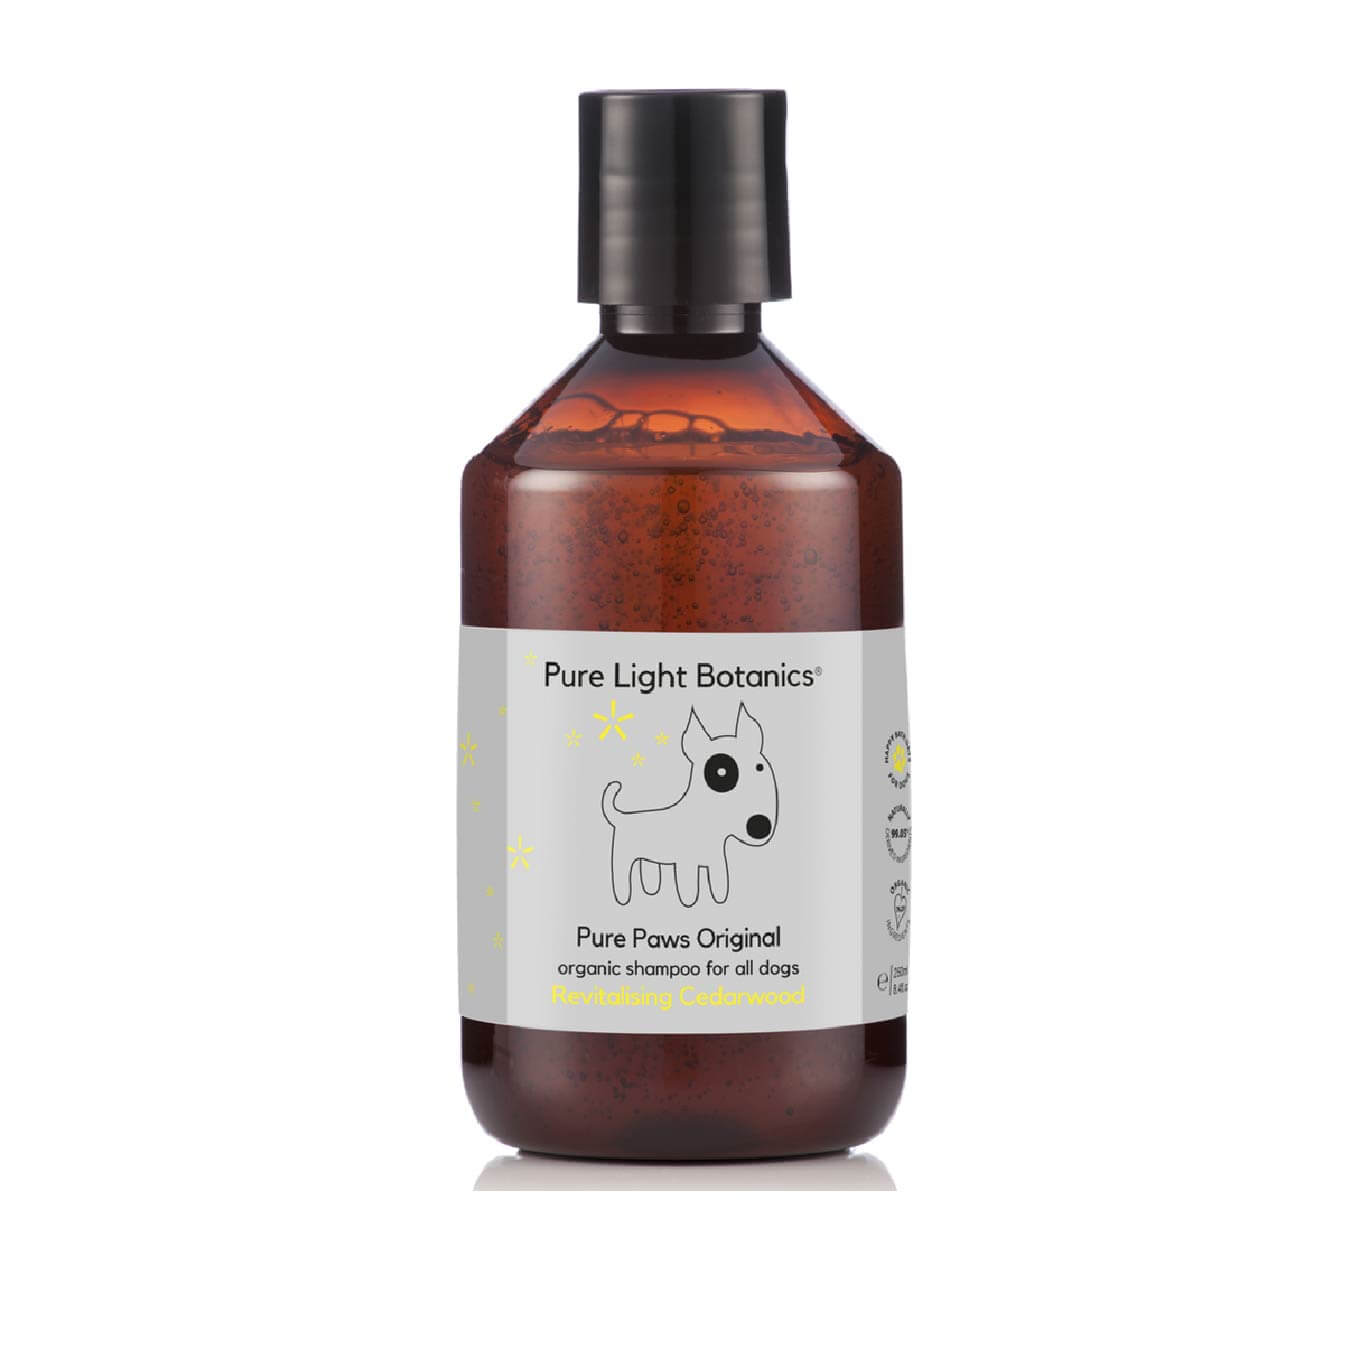 Pure Light Botanics Pure Paws Cedarwood Organic Dog Shampoo - Dogs, Flea&Tick, Grooming Essentials, New, Pure Light Botanics, Skin - Shop Vanillapup - Online Pet Shop